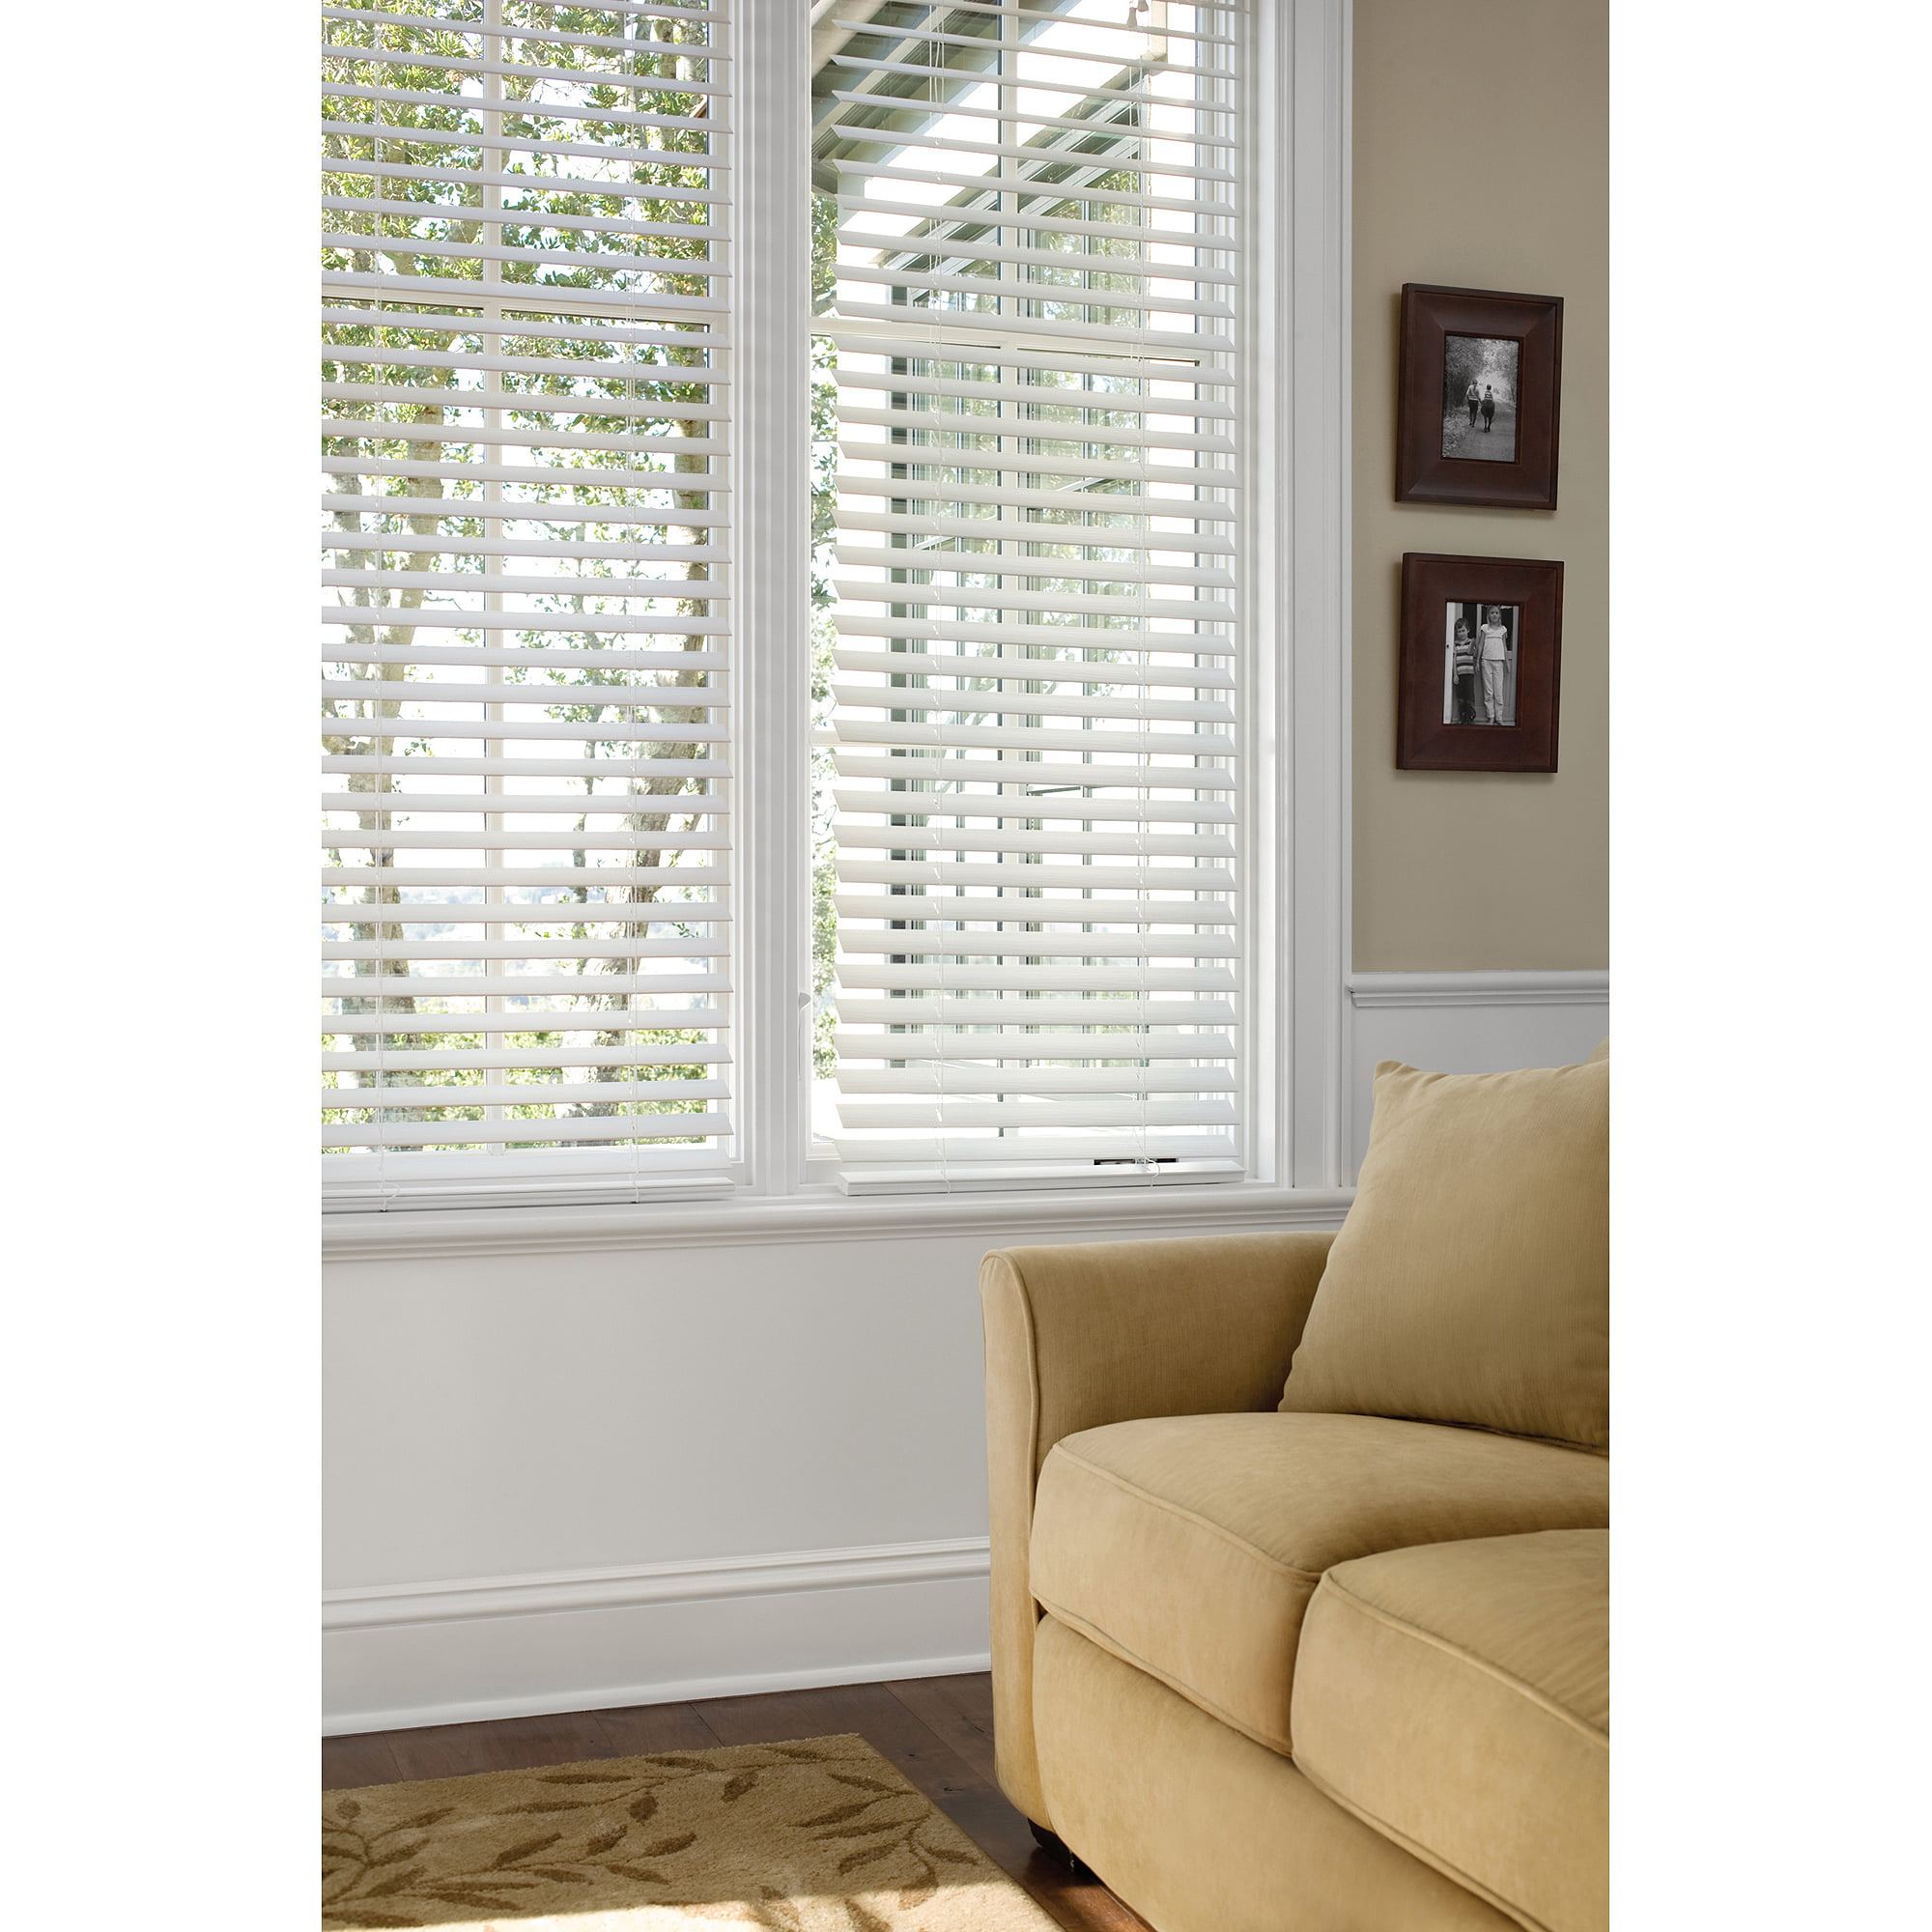 "Better Homes and Gardens 2"" Faux Wood Blinds, White by Nien Made"